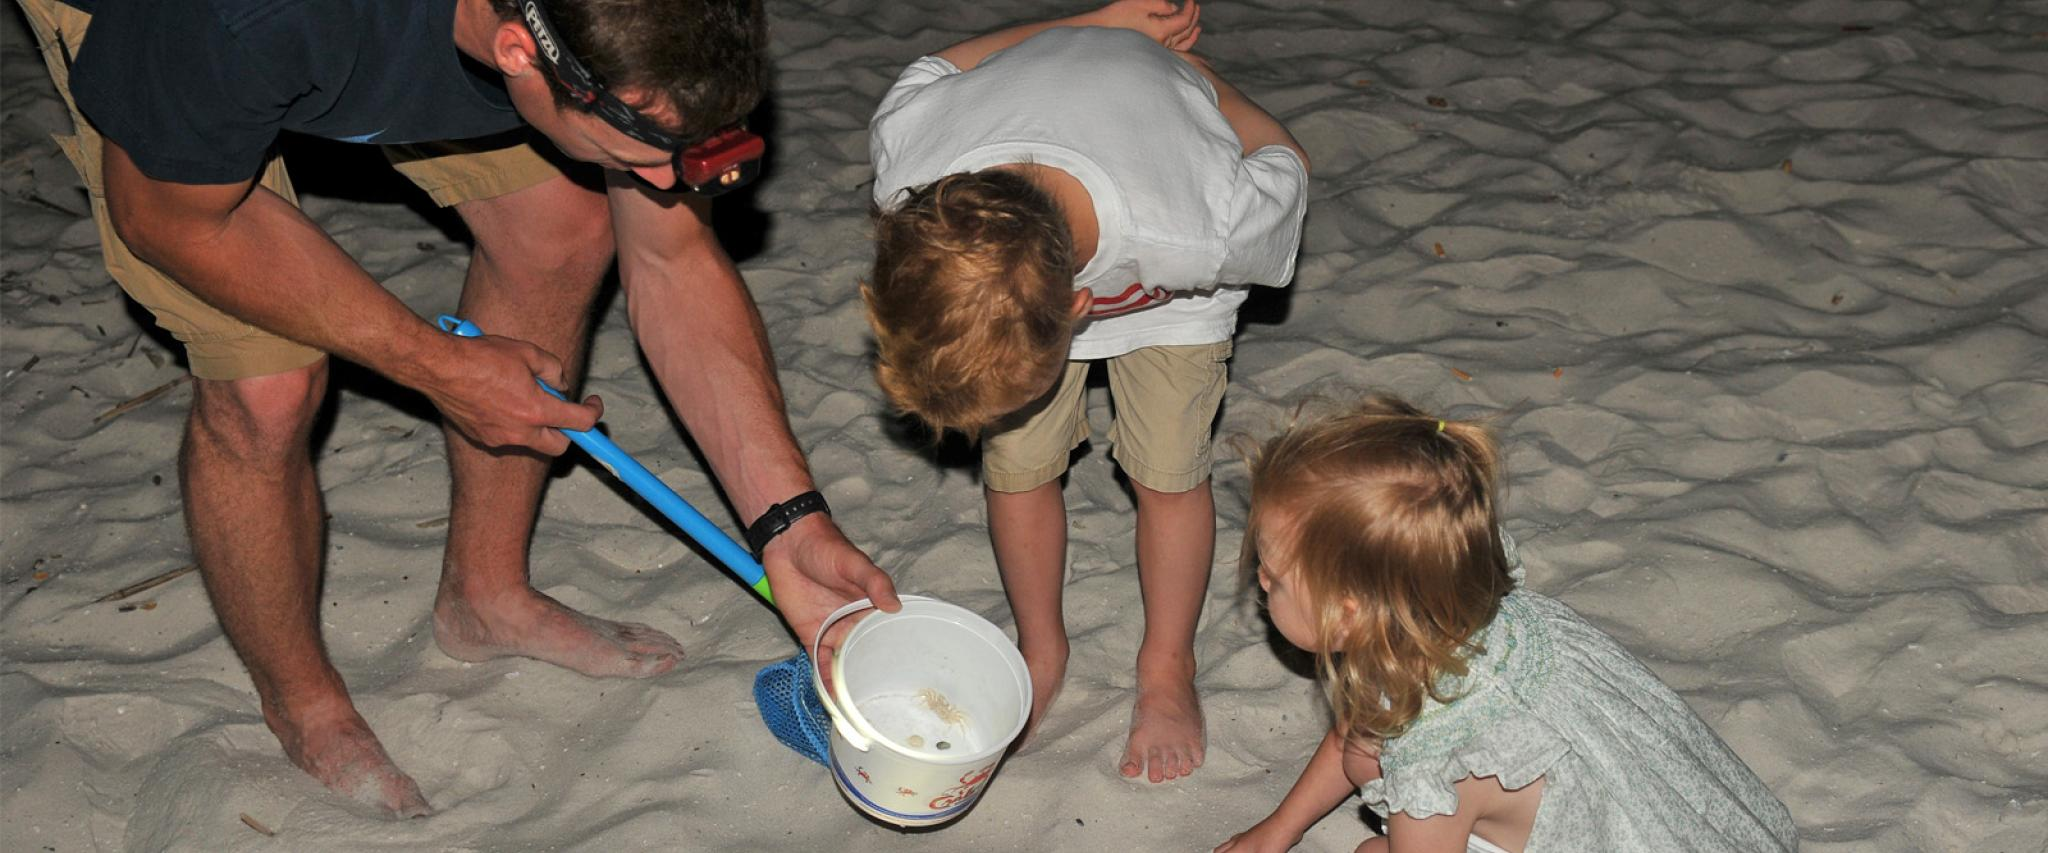 Family crab hunting on Alabama's Beaches